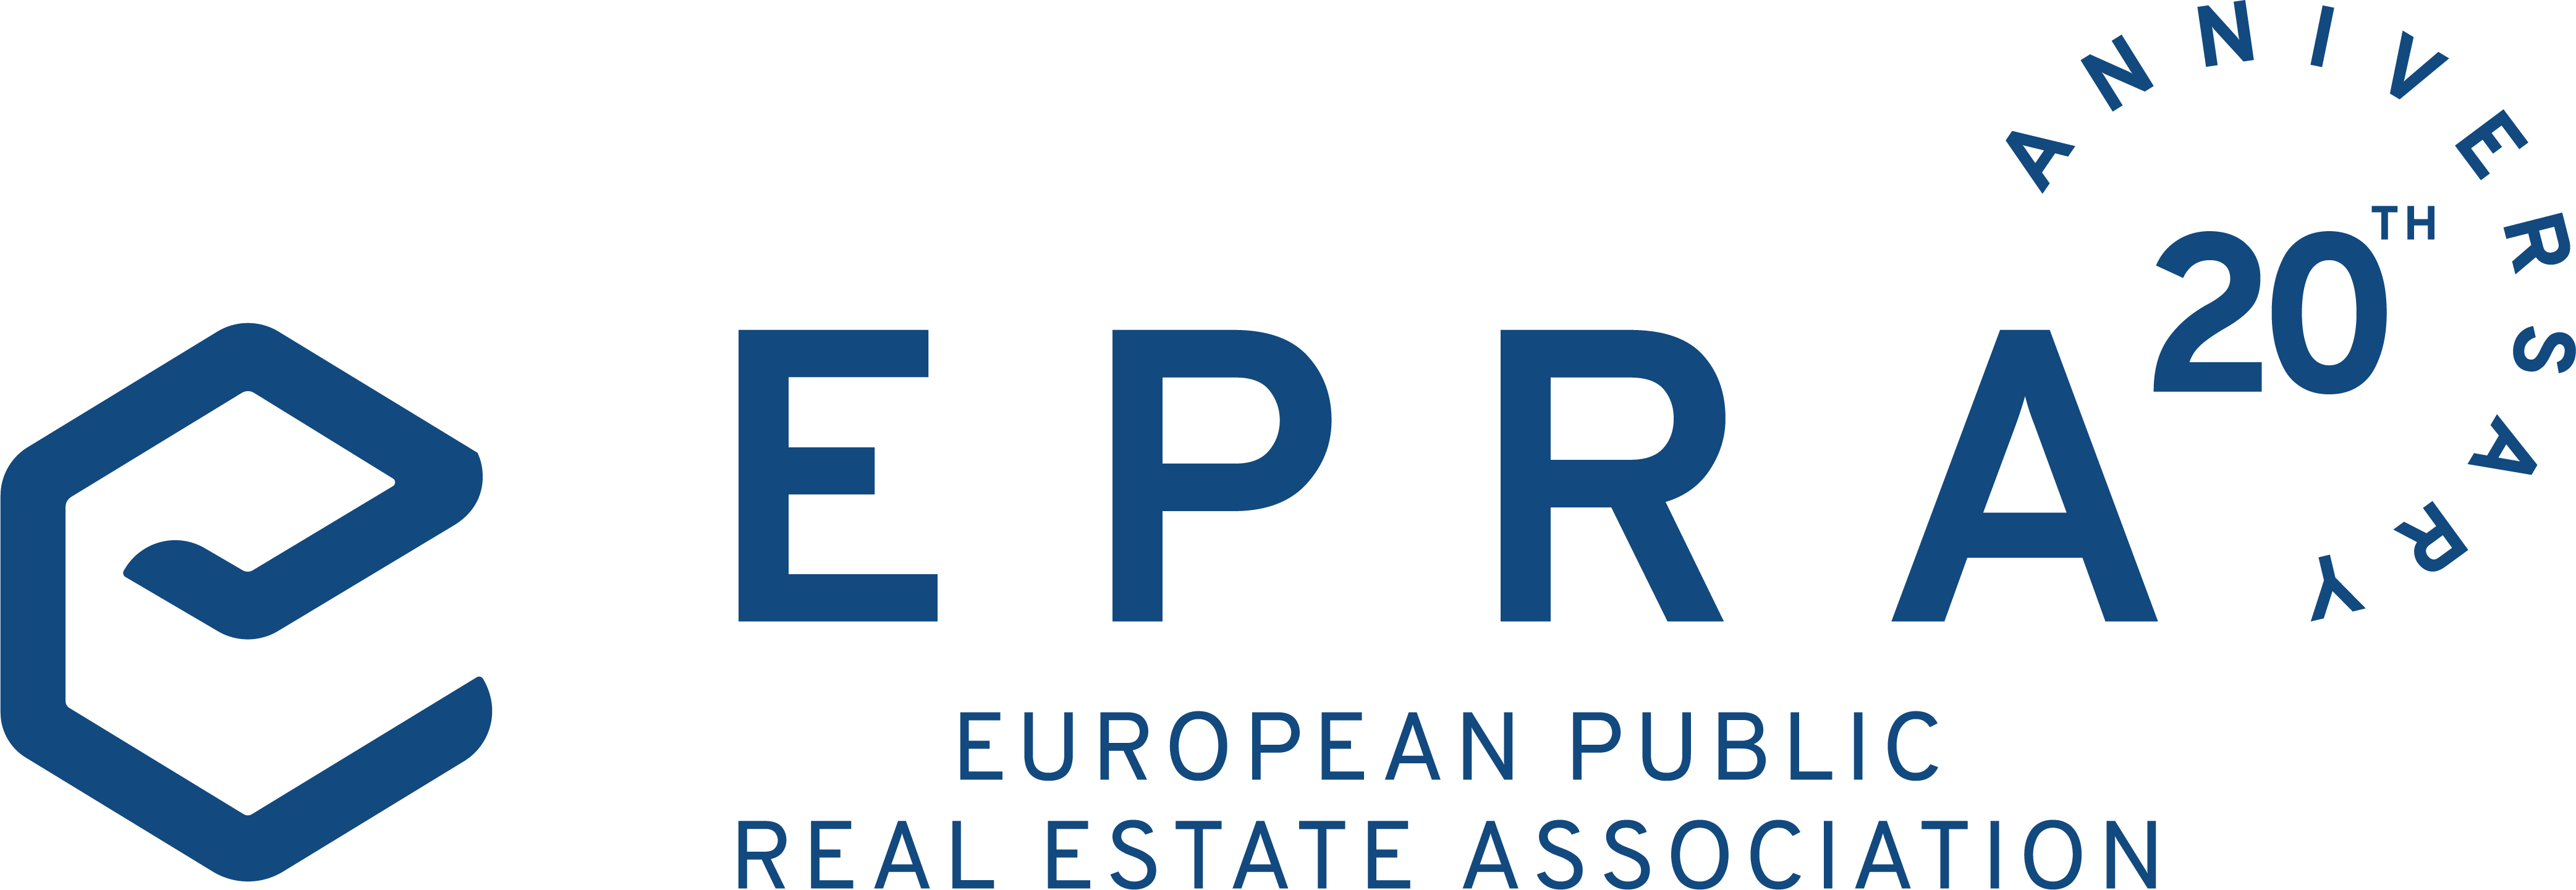 EPRA-20th-anniversary-logo-horizontal-lockup-blue.png